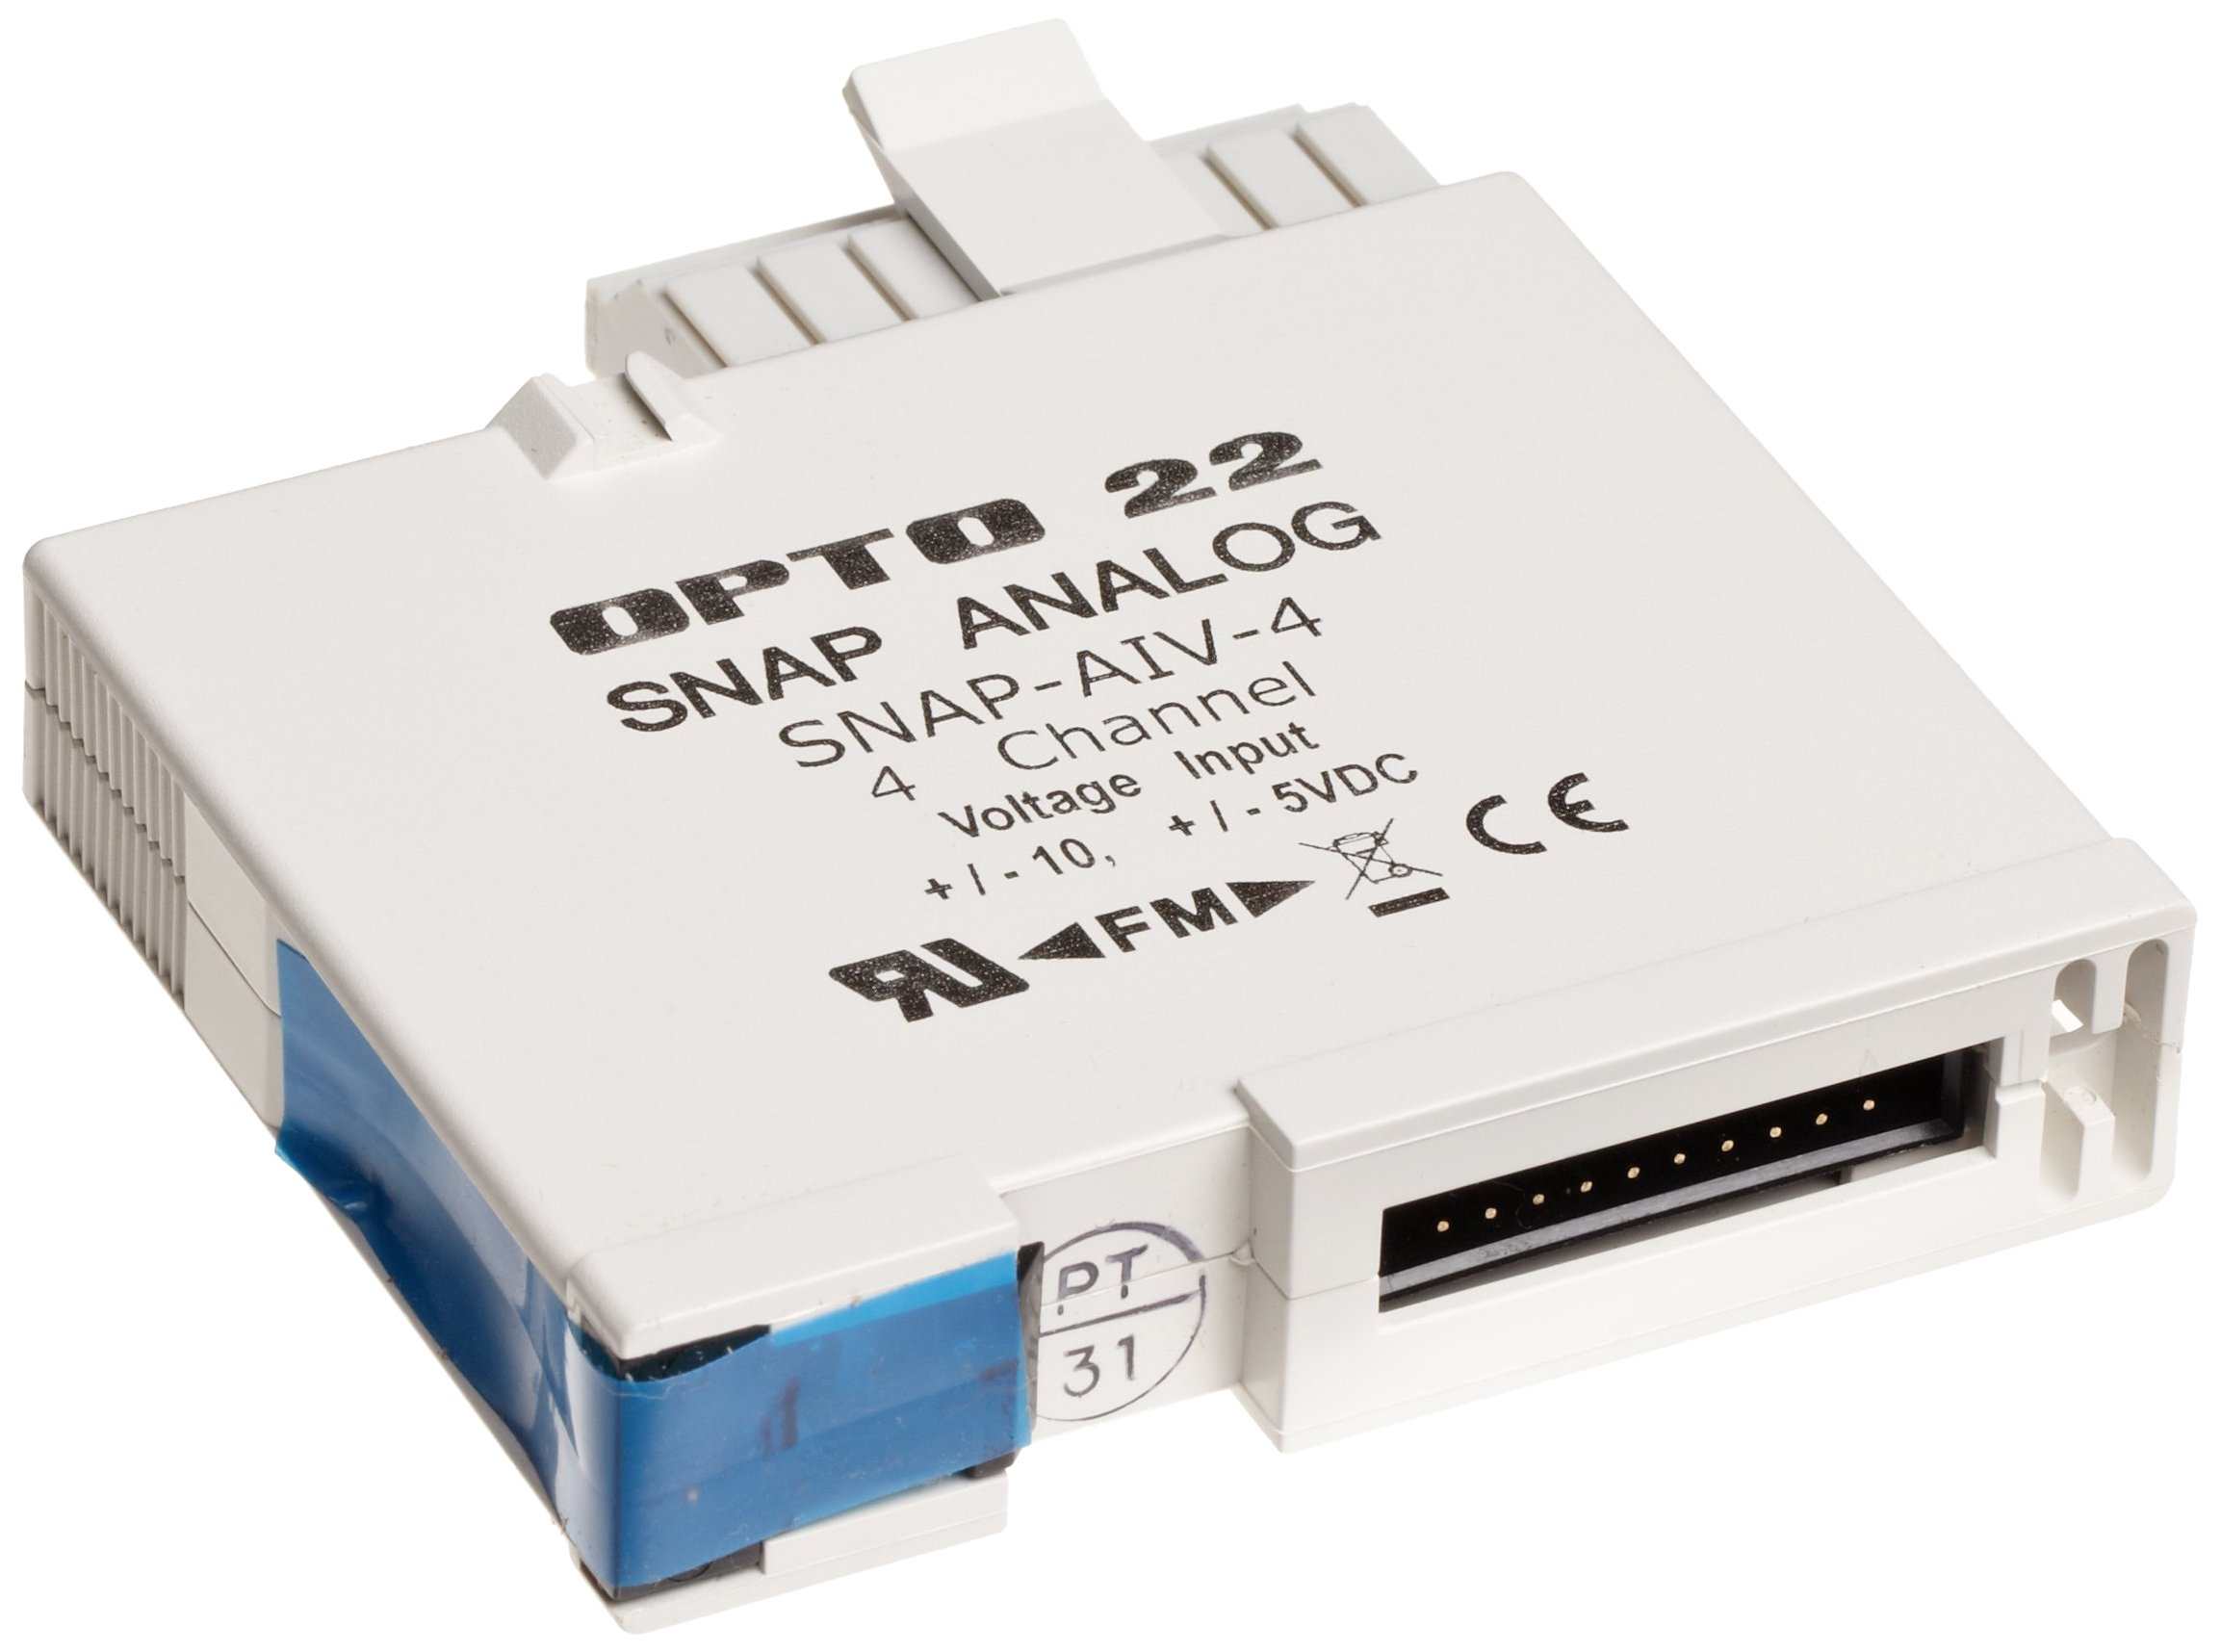 Opto 22 SNAP-AIV-4 - SNAP Analog Input Module, 4-Channel, -10 VDC to +10 VDC or -5 to +5 VDC Input